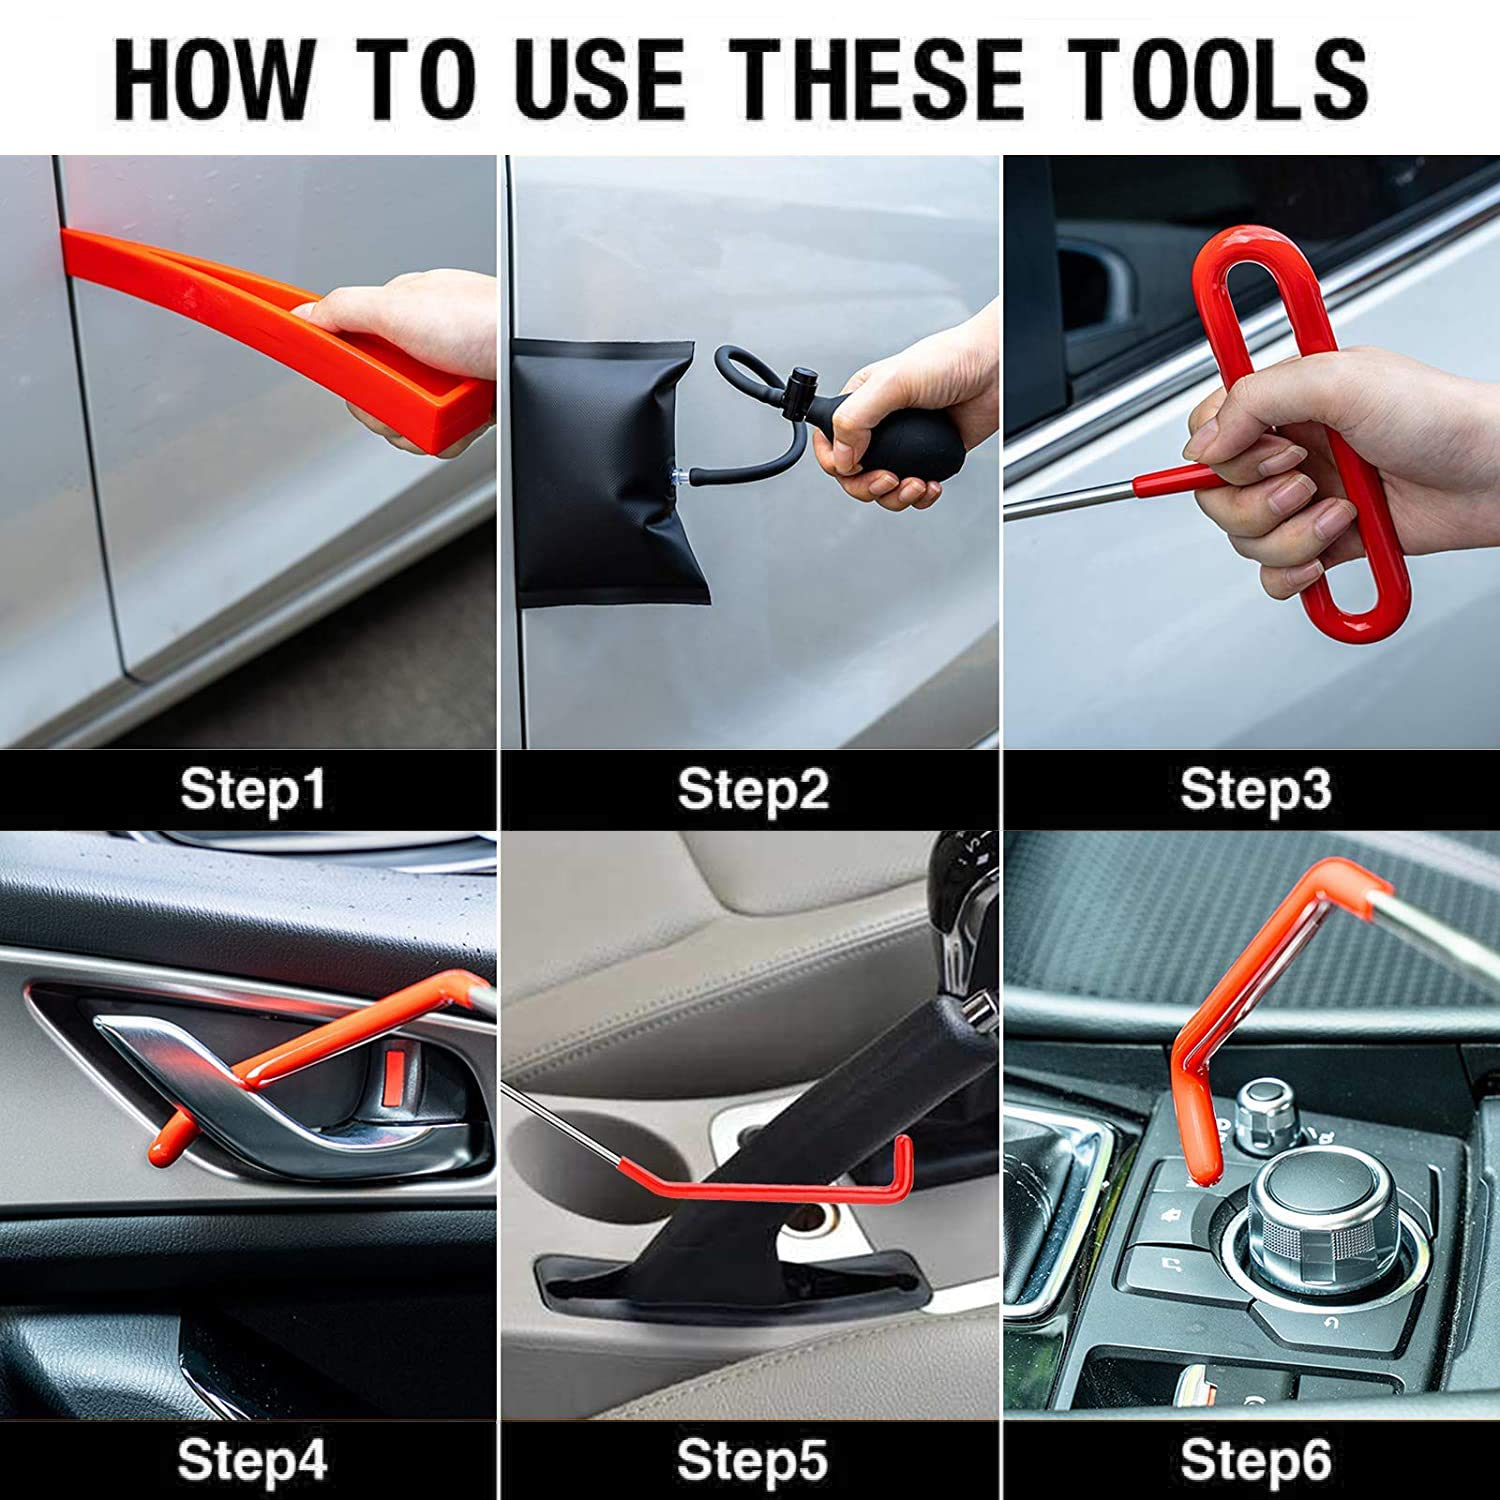 Long Reach Grabber Essential Tagout Tool Kit for Automotive Truck 13 pcs Professional Car Lockout Kit Air Wedge Pump Waterproof Carrying Case Emergency Vehicle Door Unlock Tools with LED Light